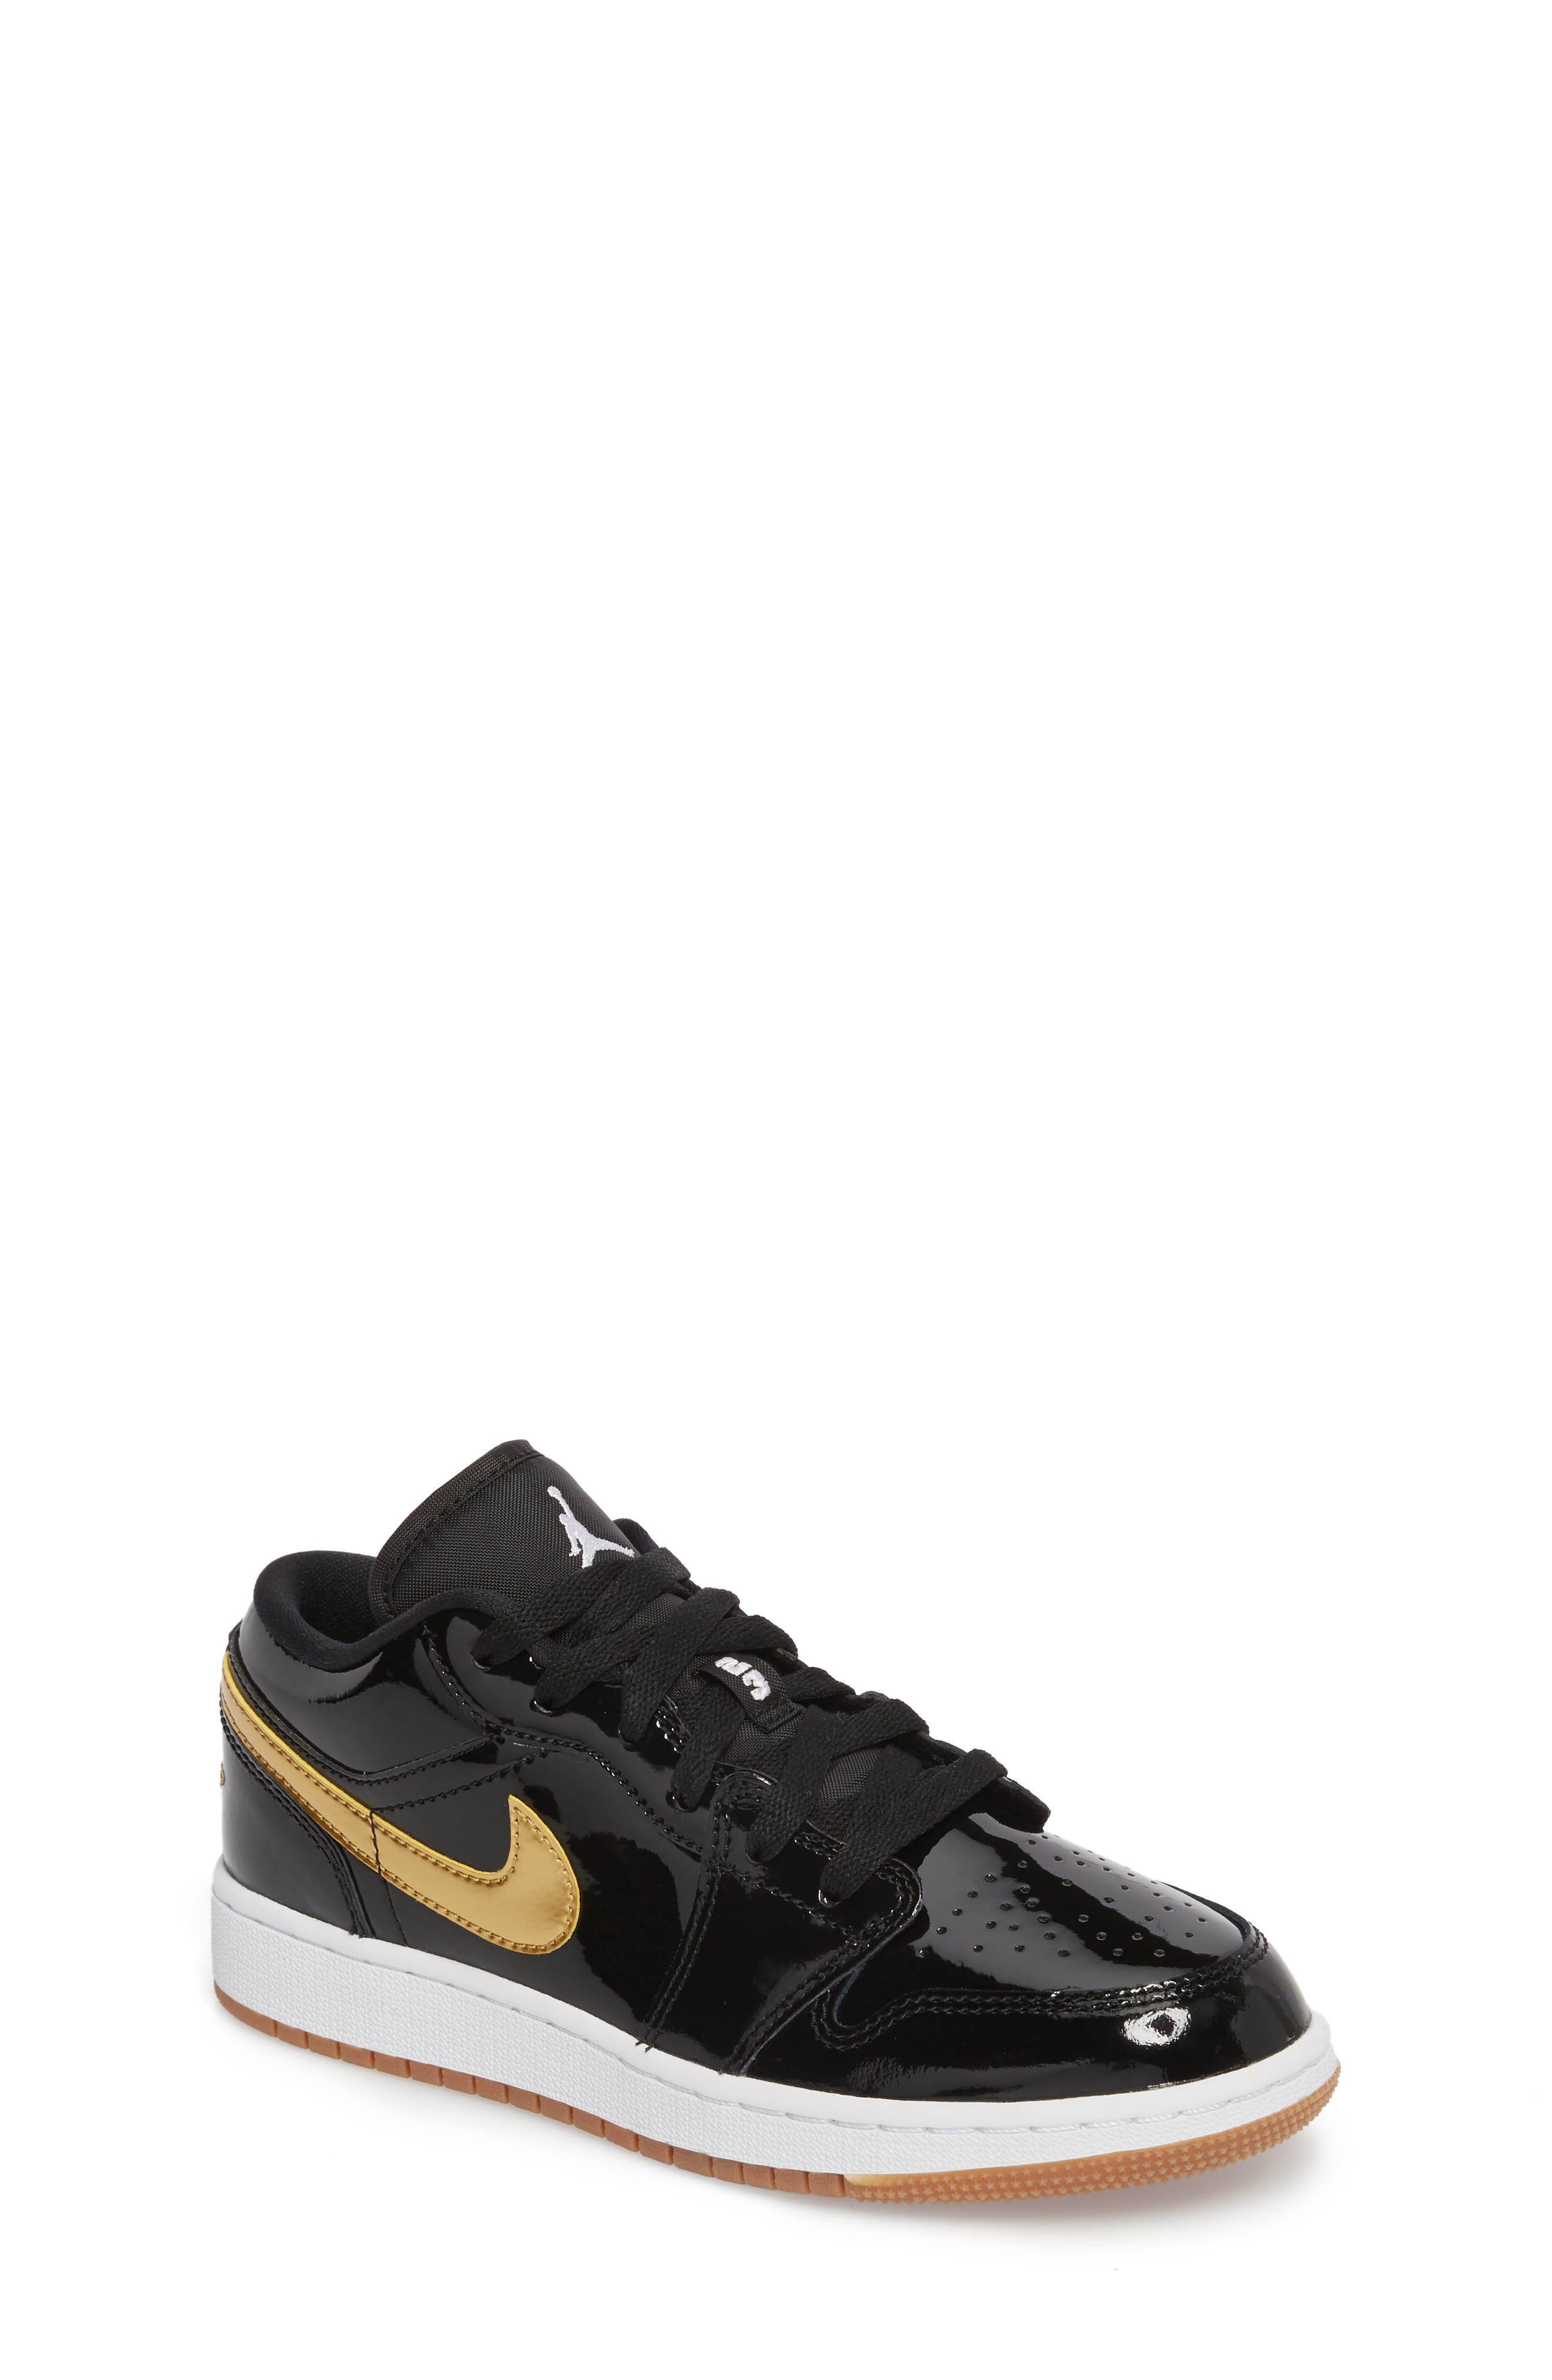 Nike 'Jordan 1 Low' Basketball Shoe,                             Main thumbnail 1, color,